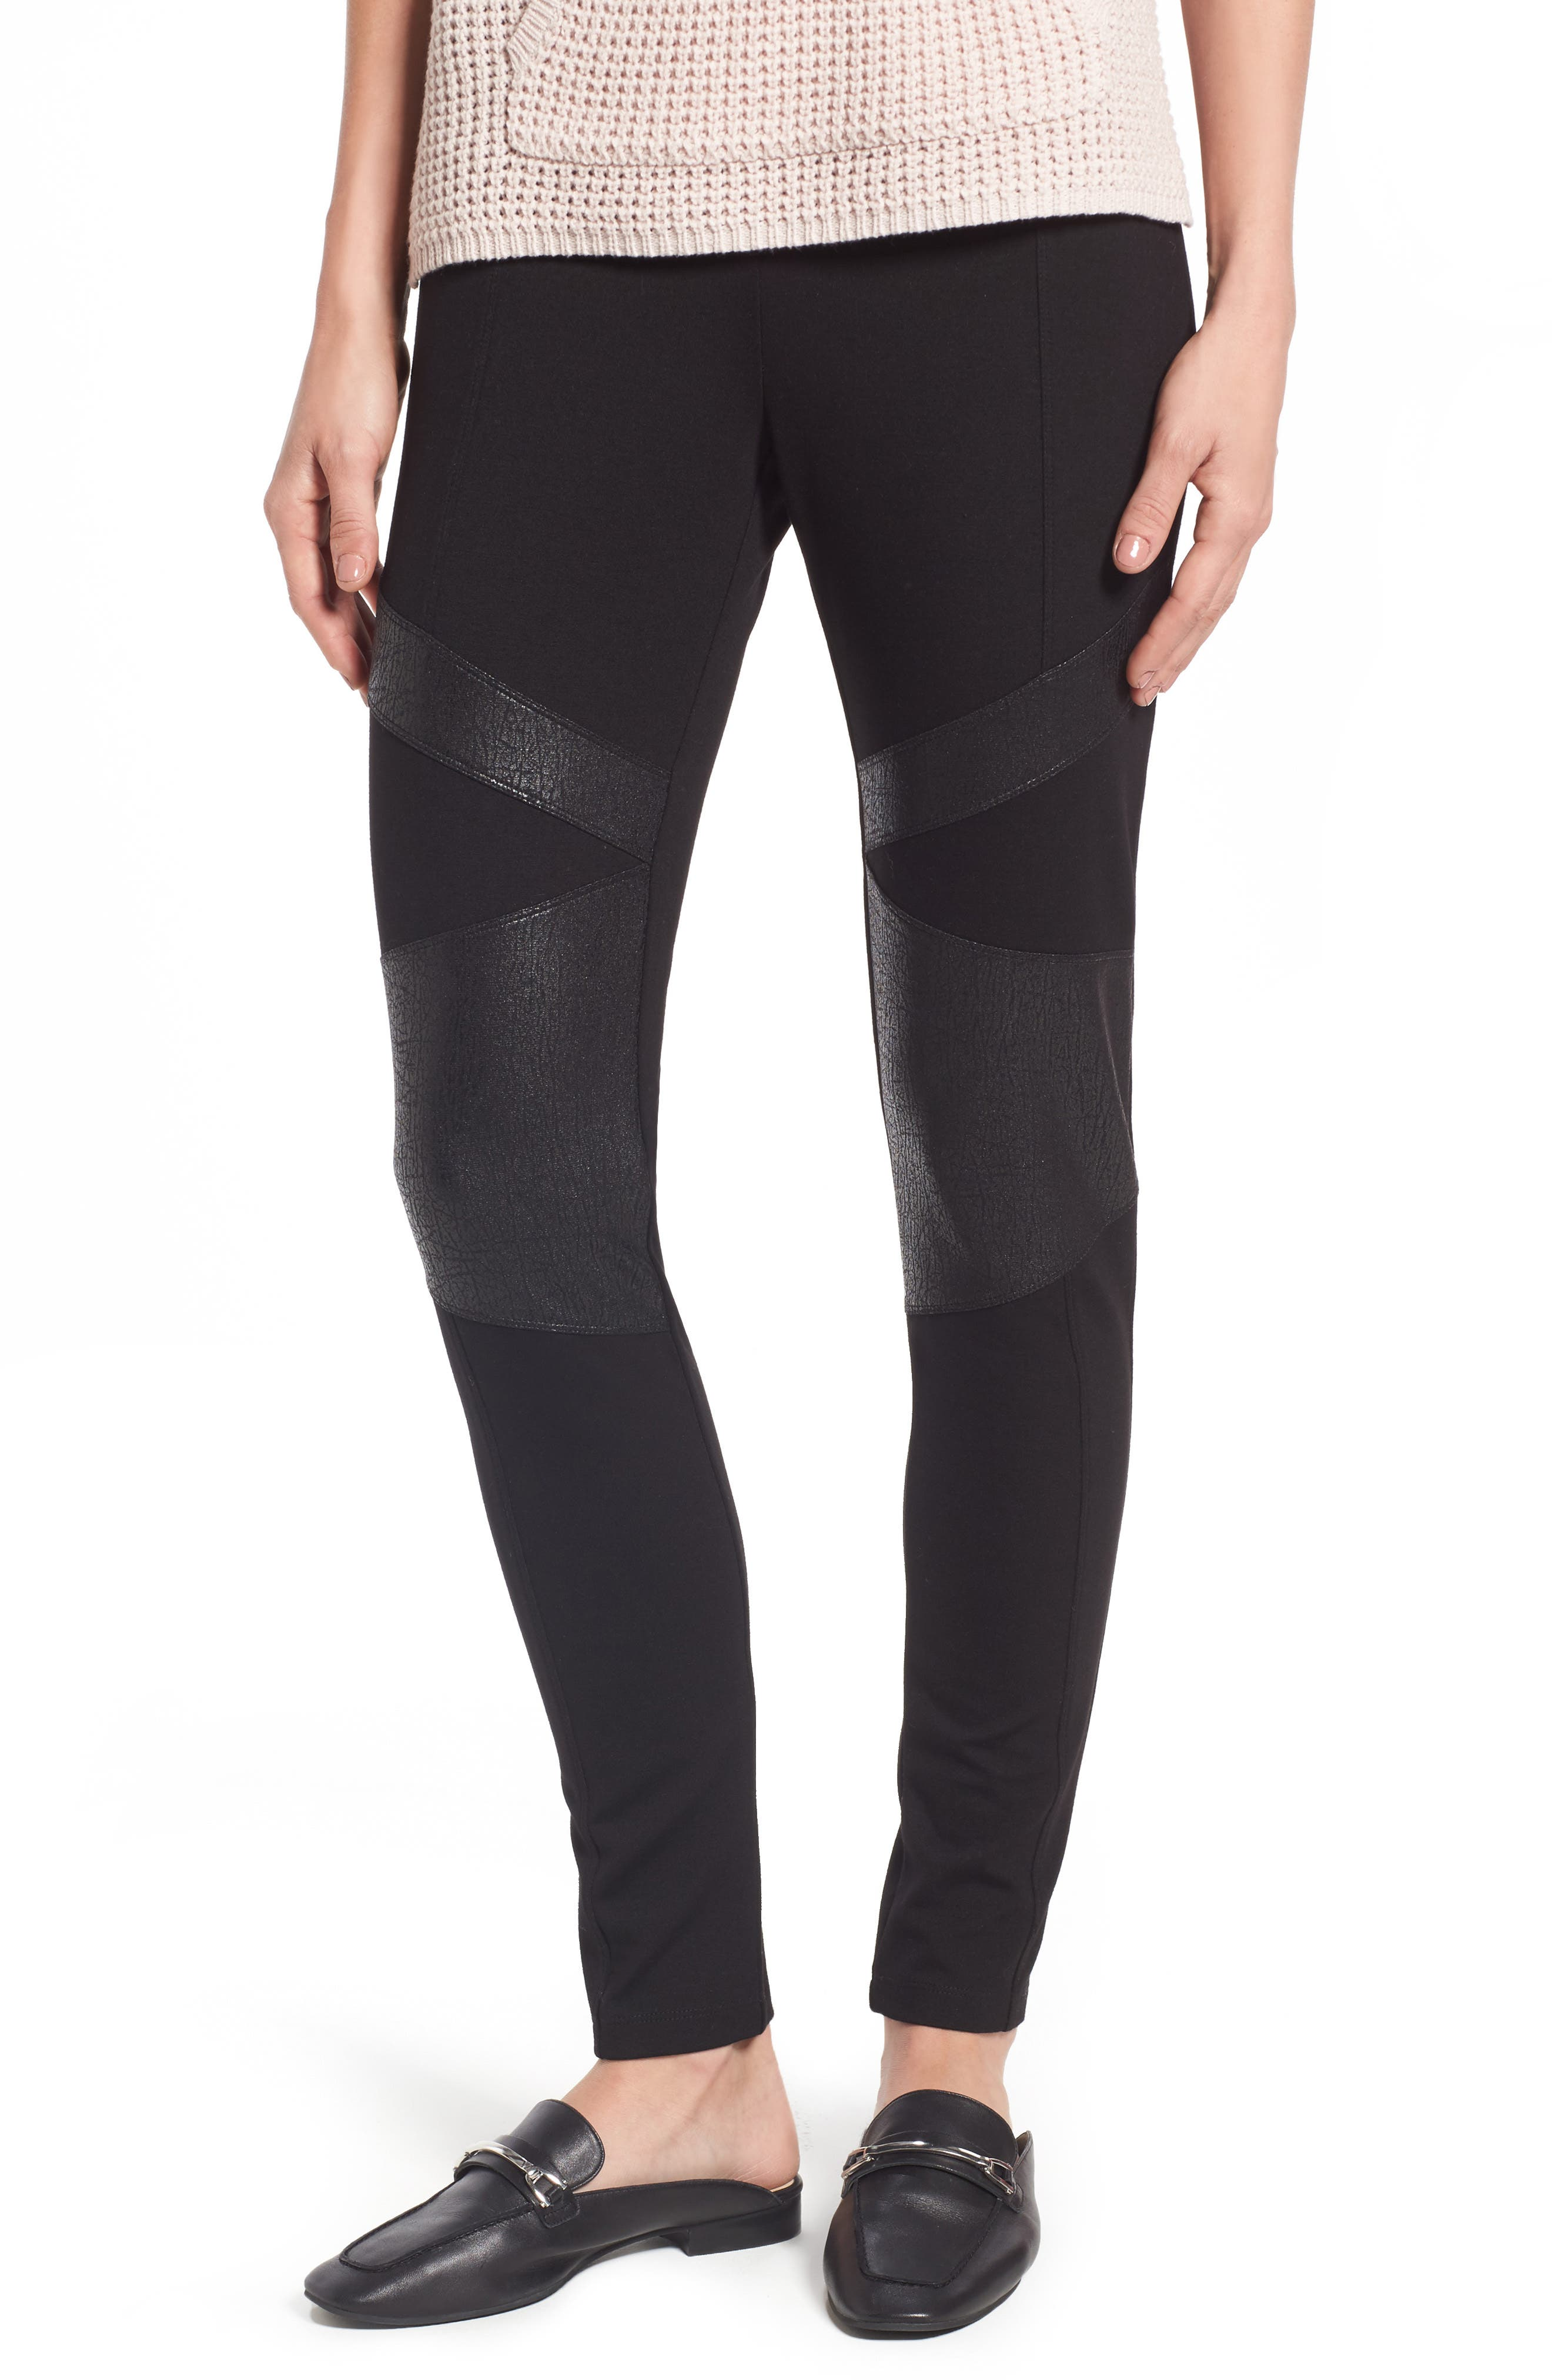 Main Image - Two by Vince Camuto Lacquer Inset Moto Leggings (Regular & Petite)